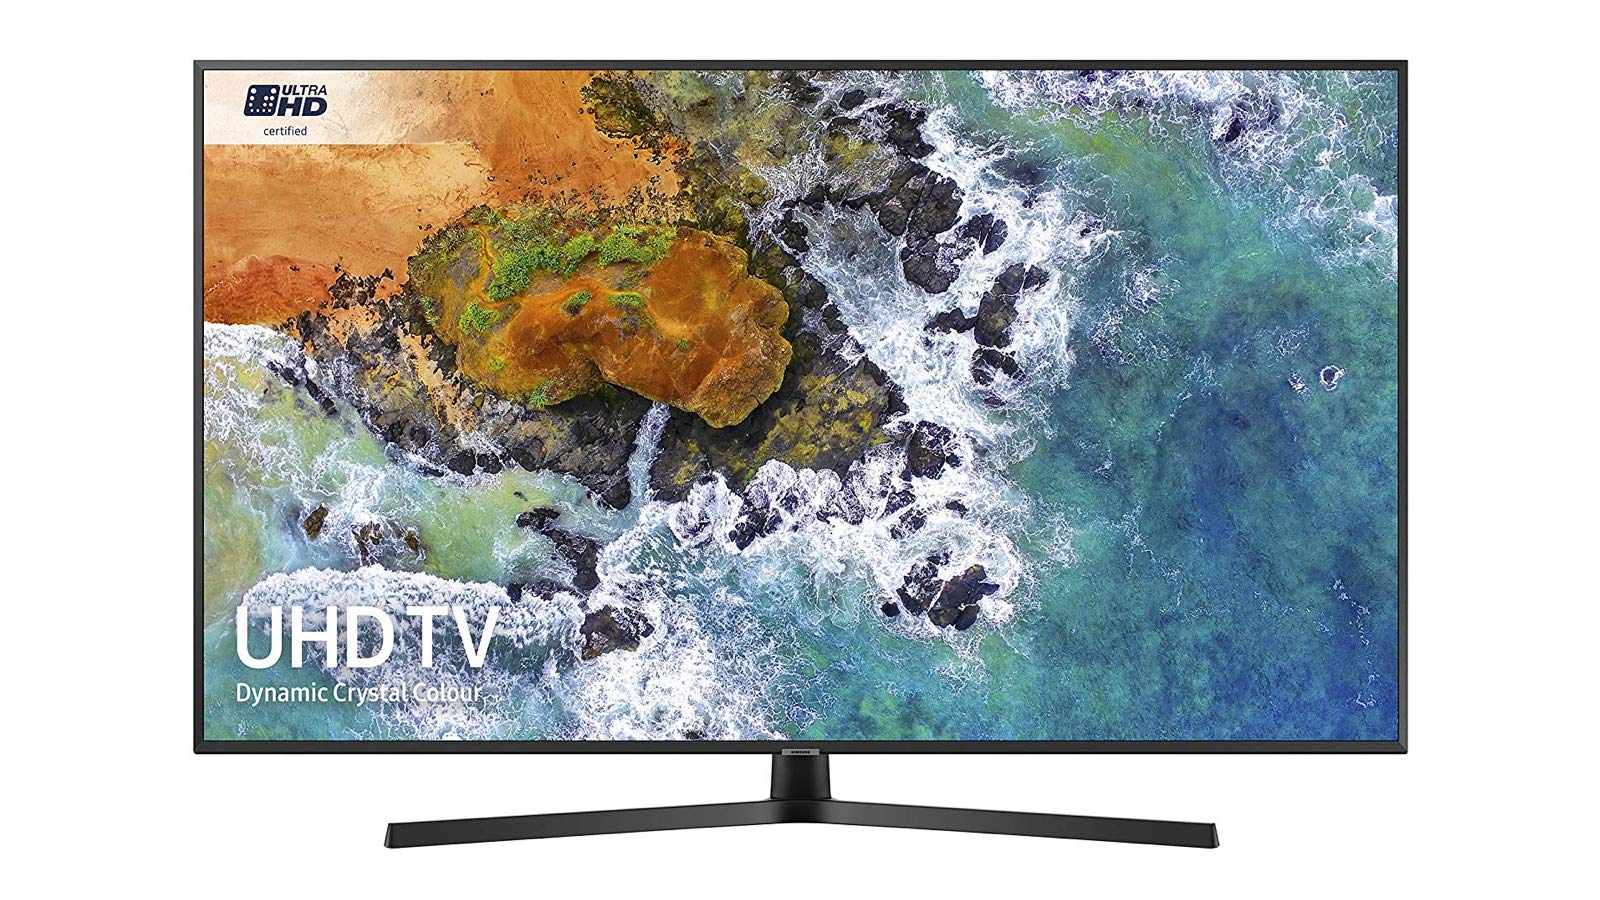 Samsung NU7400: Is this 4K TV deal any good? | What Hi-Fi?